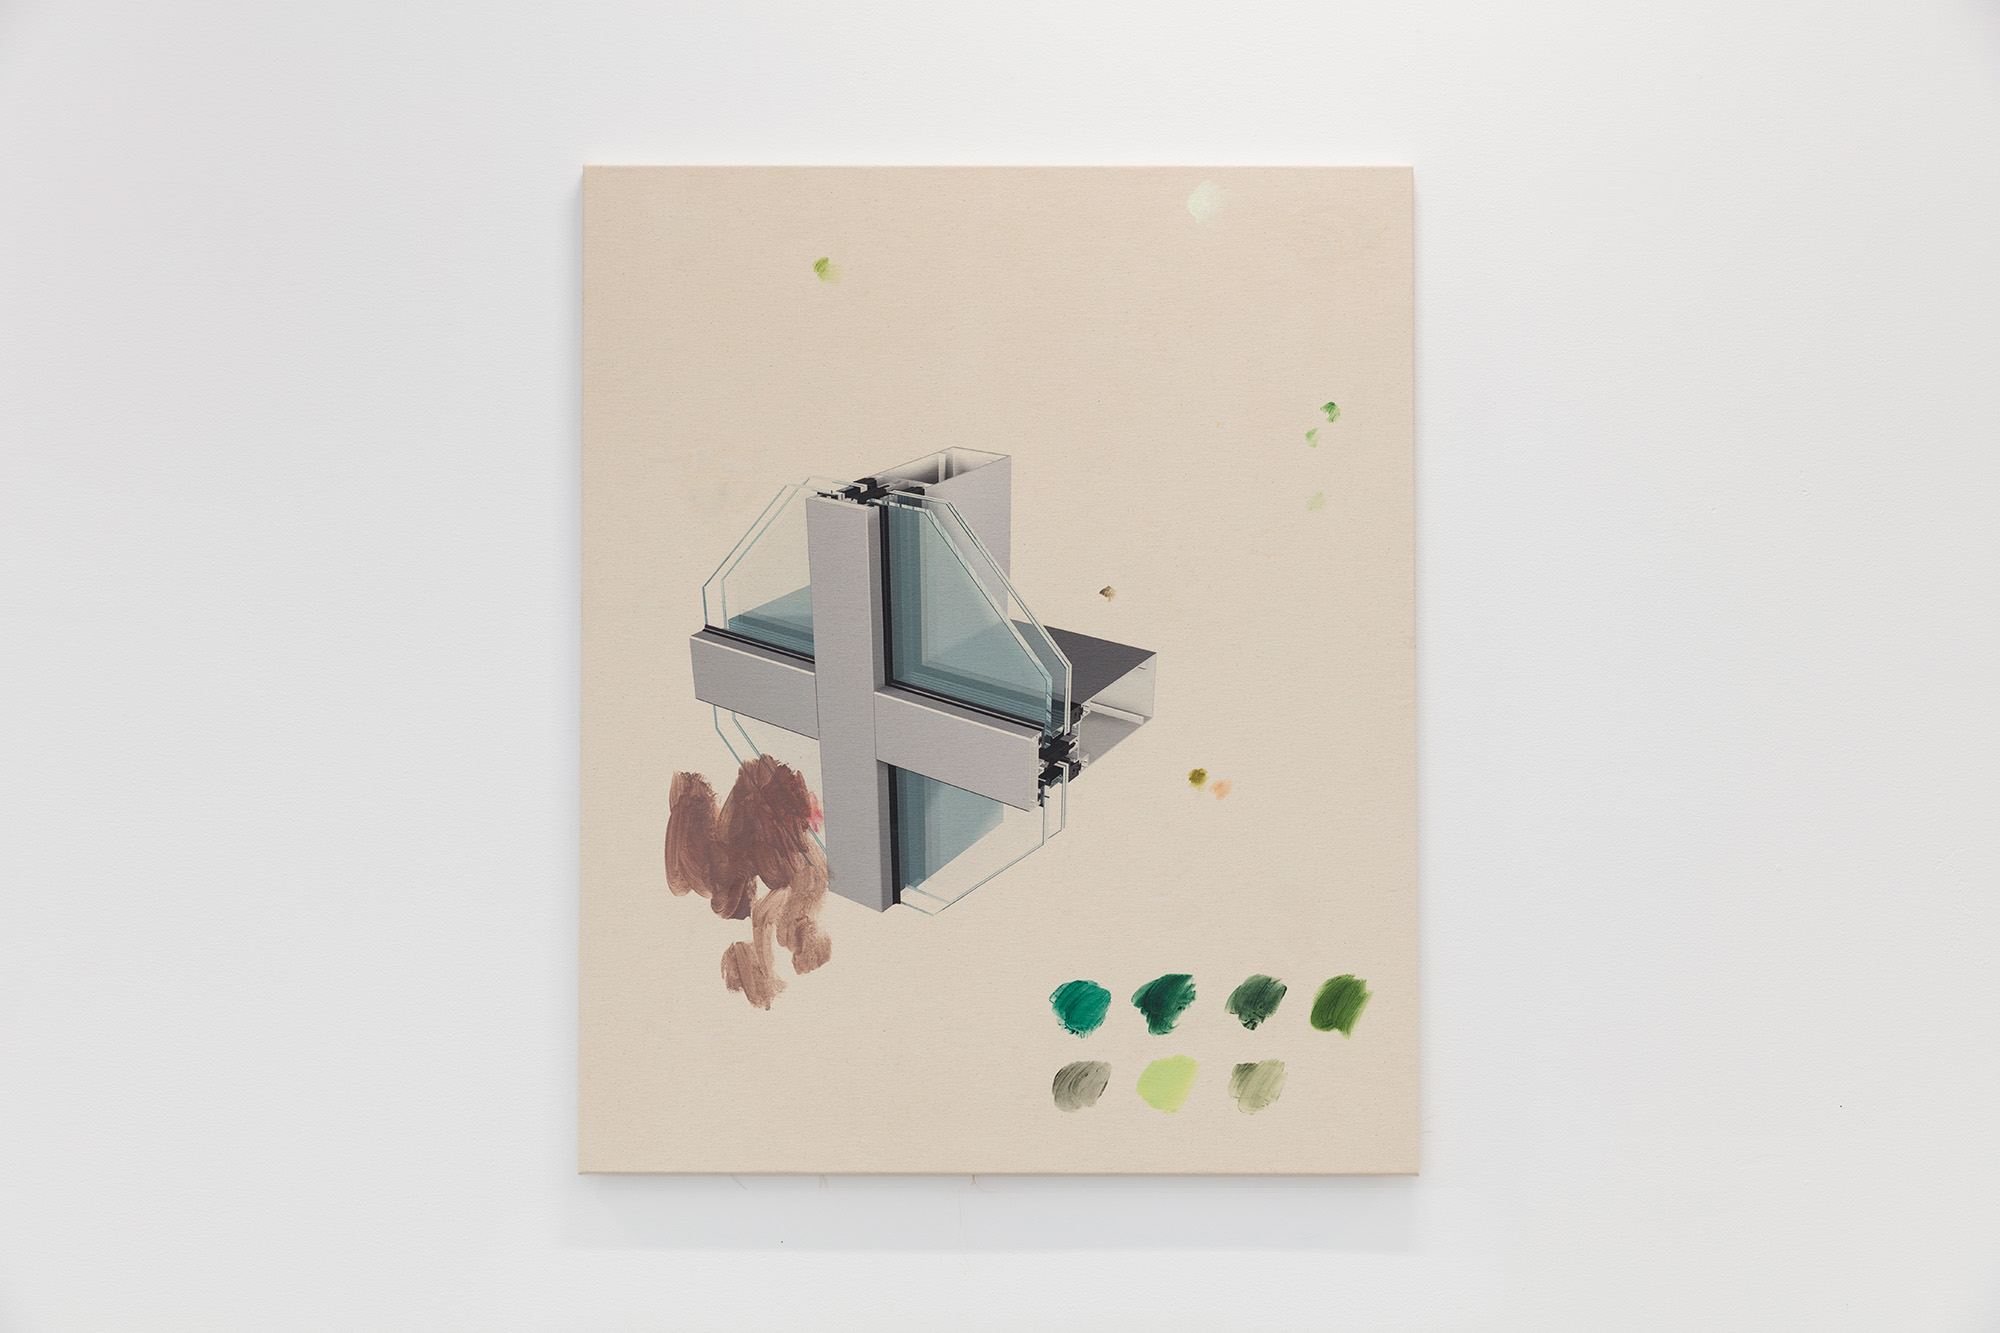 Ole Martin Lund Bø at Golsa, curated by MELK 2018